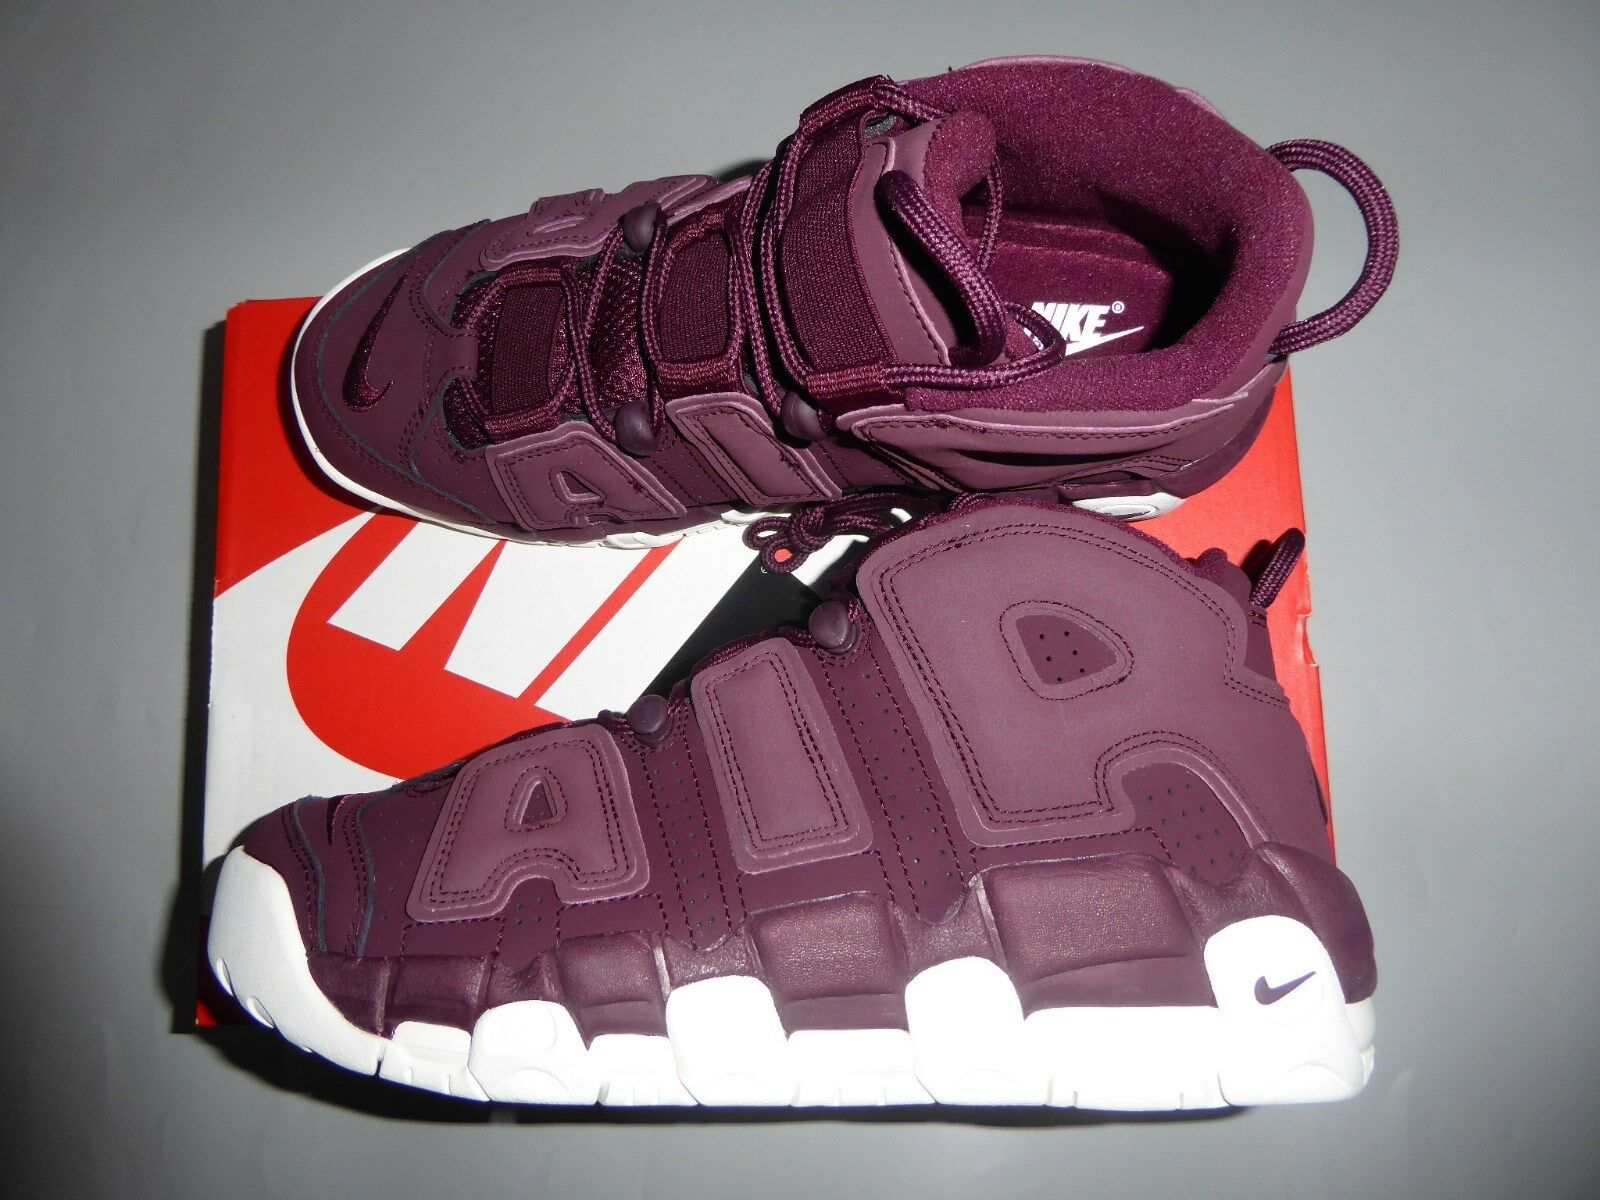 14020 nike mehr air mehr nike uptempo96 921949-600 us8.5 a87c0c